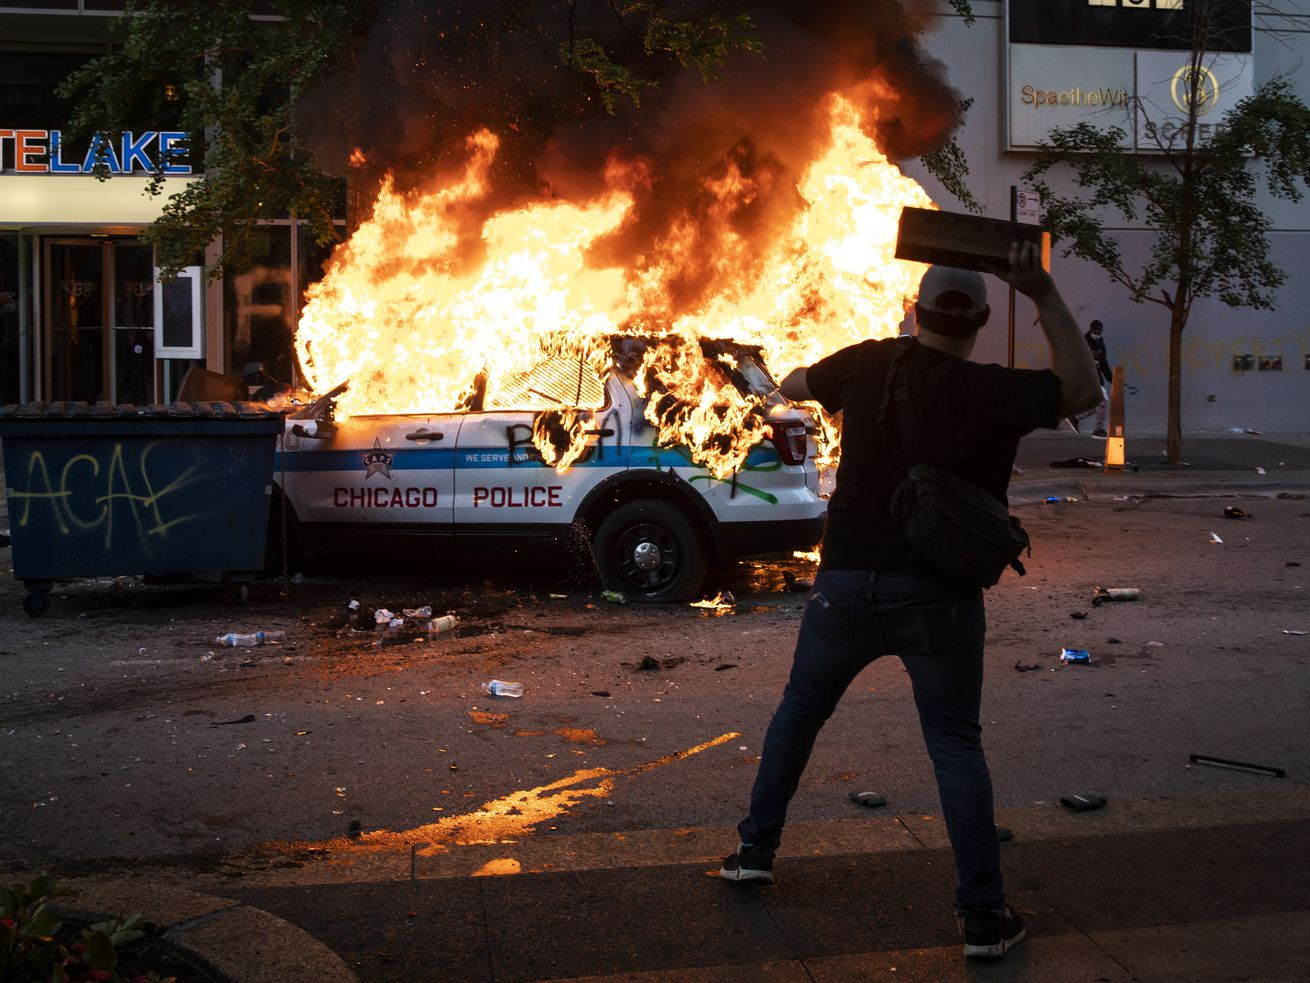 A Chicago Police Department SUV is set on fire near State and Lake in the Loop as thousands of protesters in Chicago joined national outrage over the killing of George Floyd in Minneapolis police custody, Saturday afternoon, May 30, 2020.